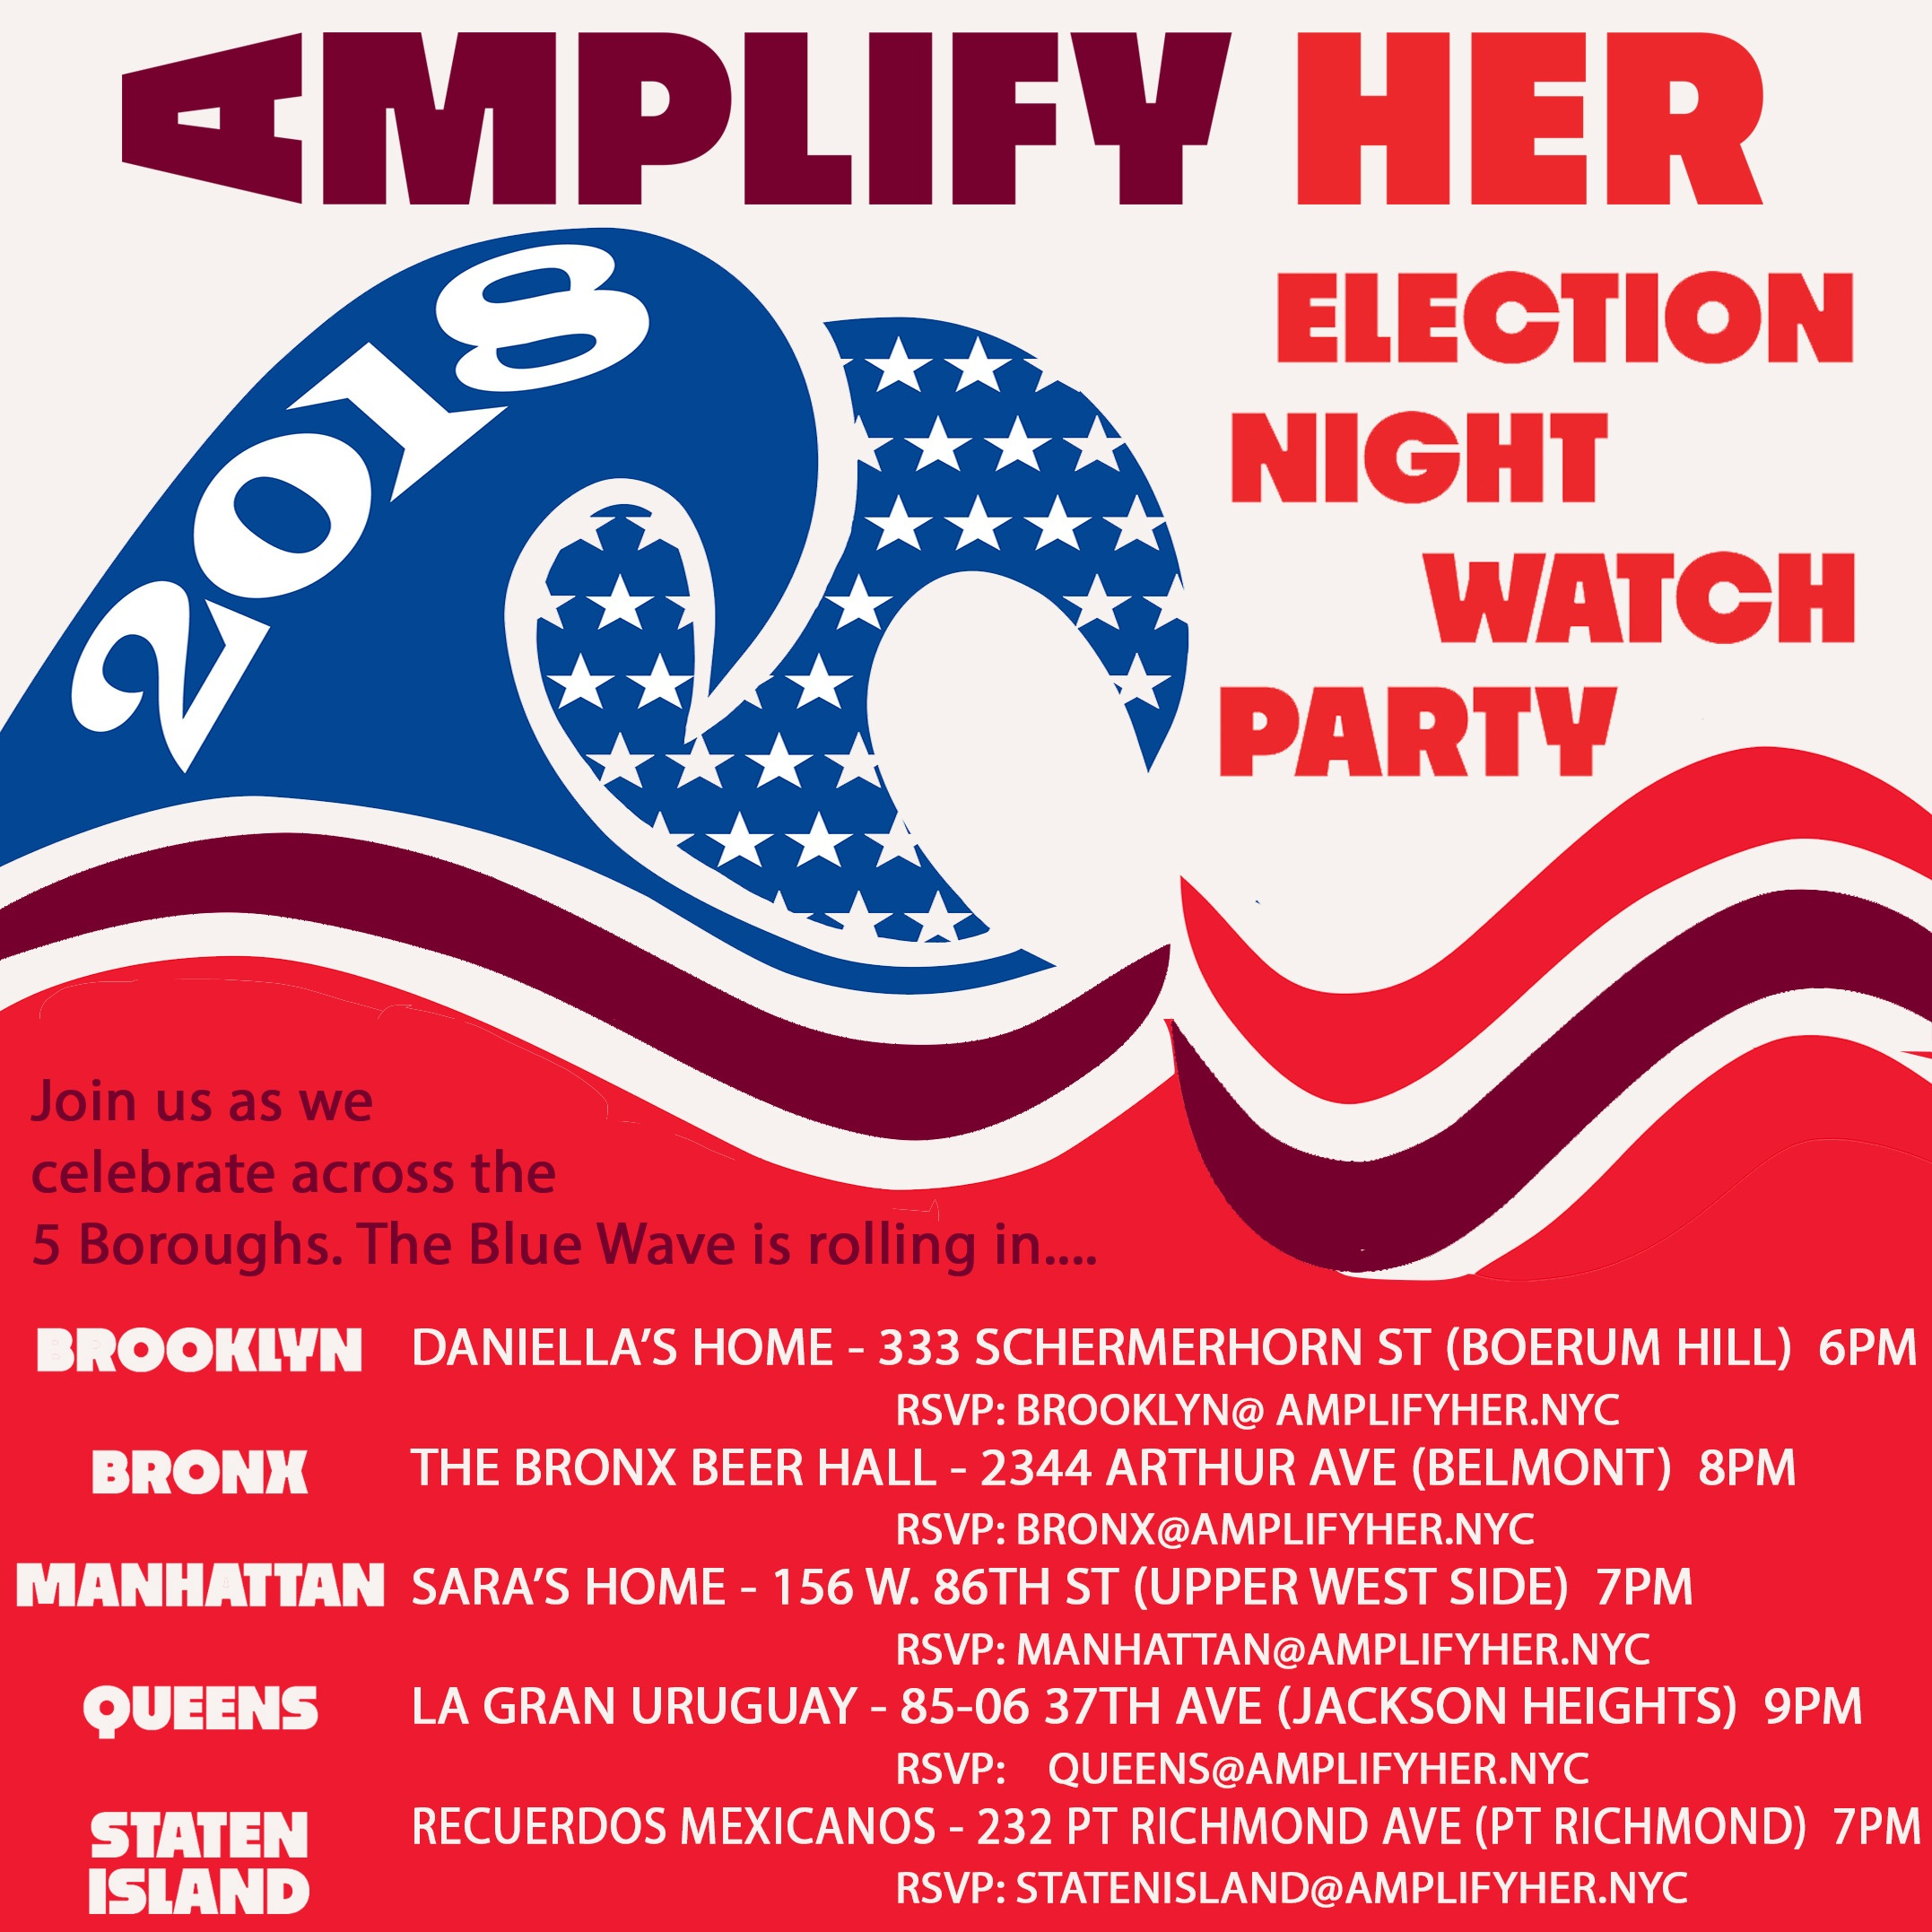 AMPLIFY HER SPECIAL EVENTS (BRONX, BROOKLYN, MANHATTAN, QUEENS, STATEN ISLAND)